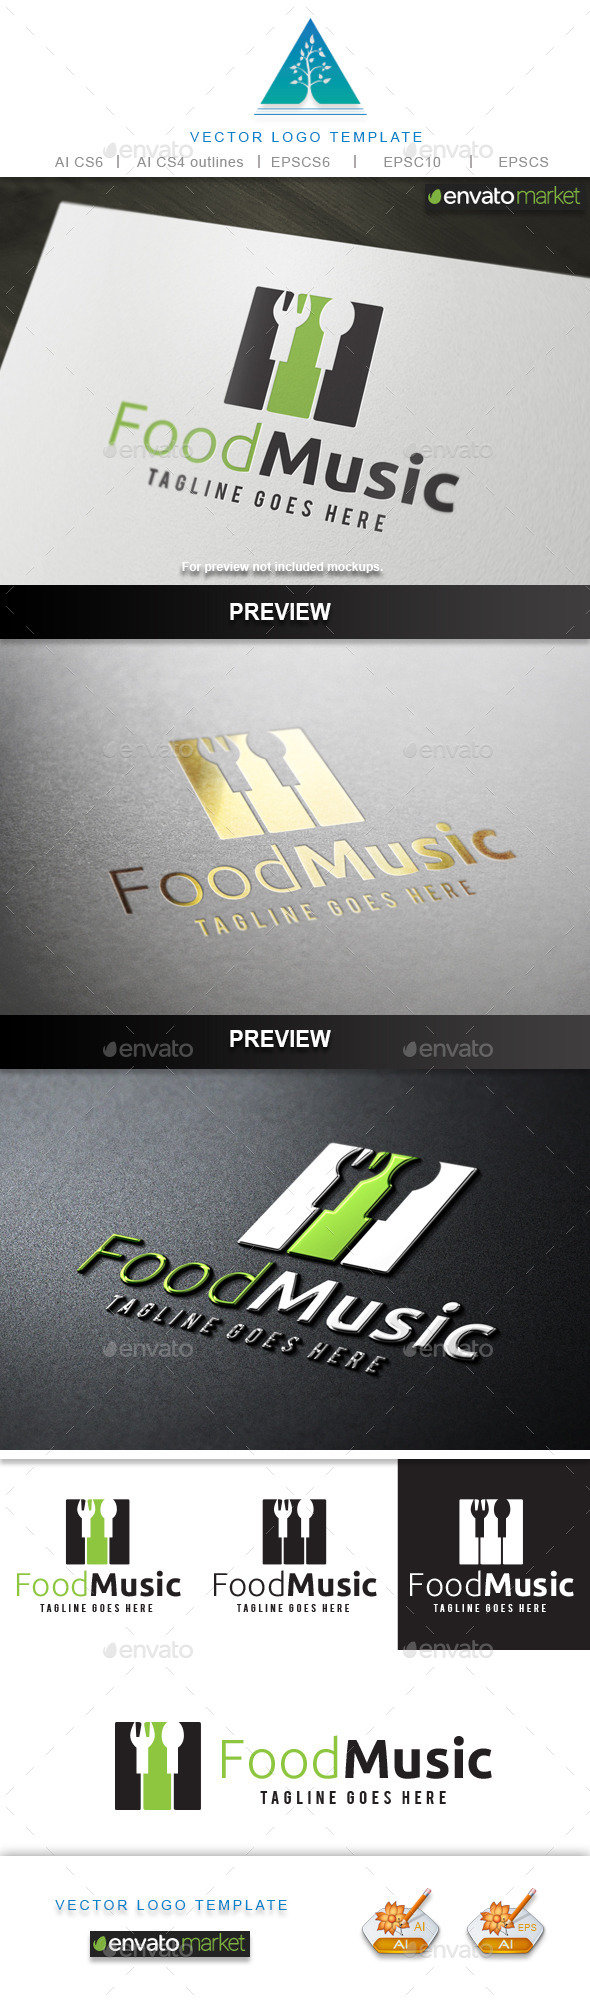 Food Music Logo